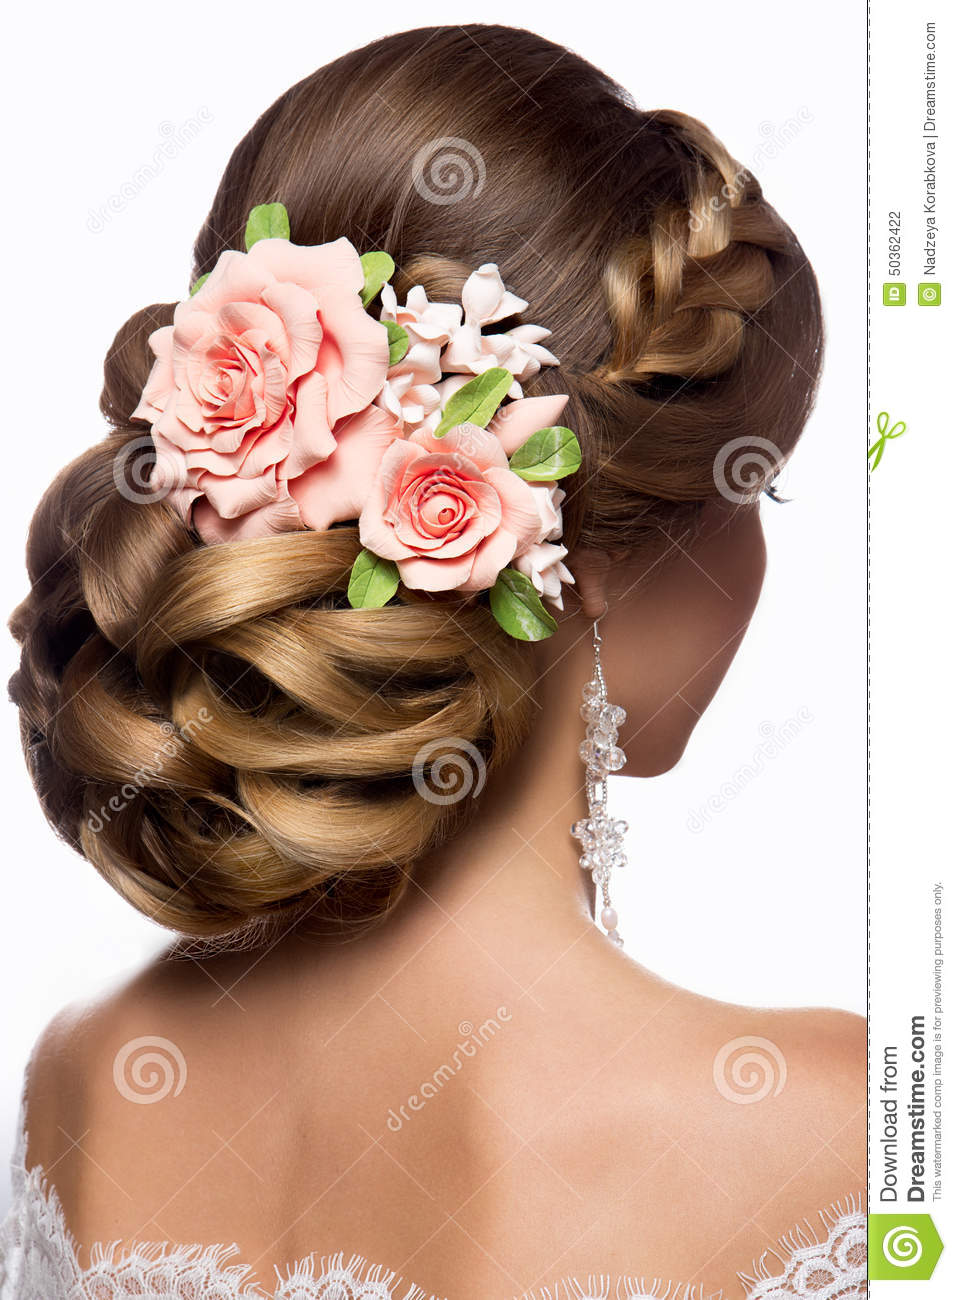 Beautiful woman with gold makeup.Beautiful bride with fashion wedding hairstyle.